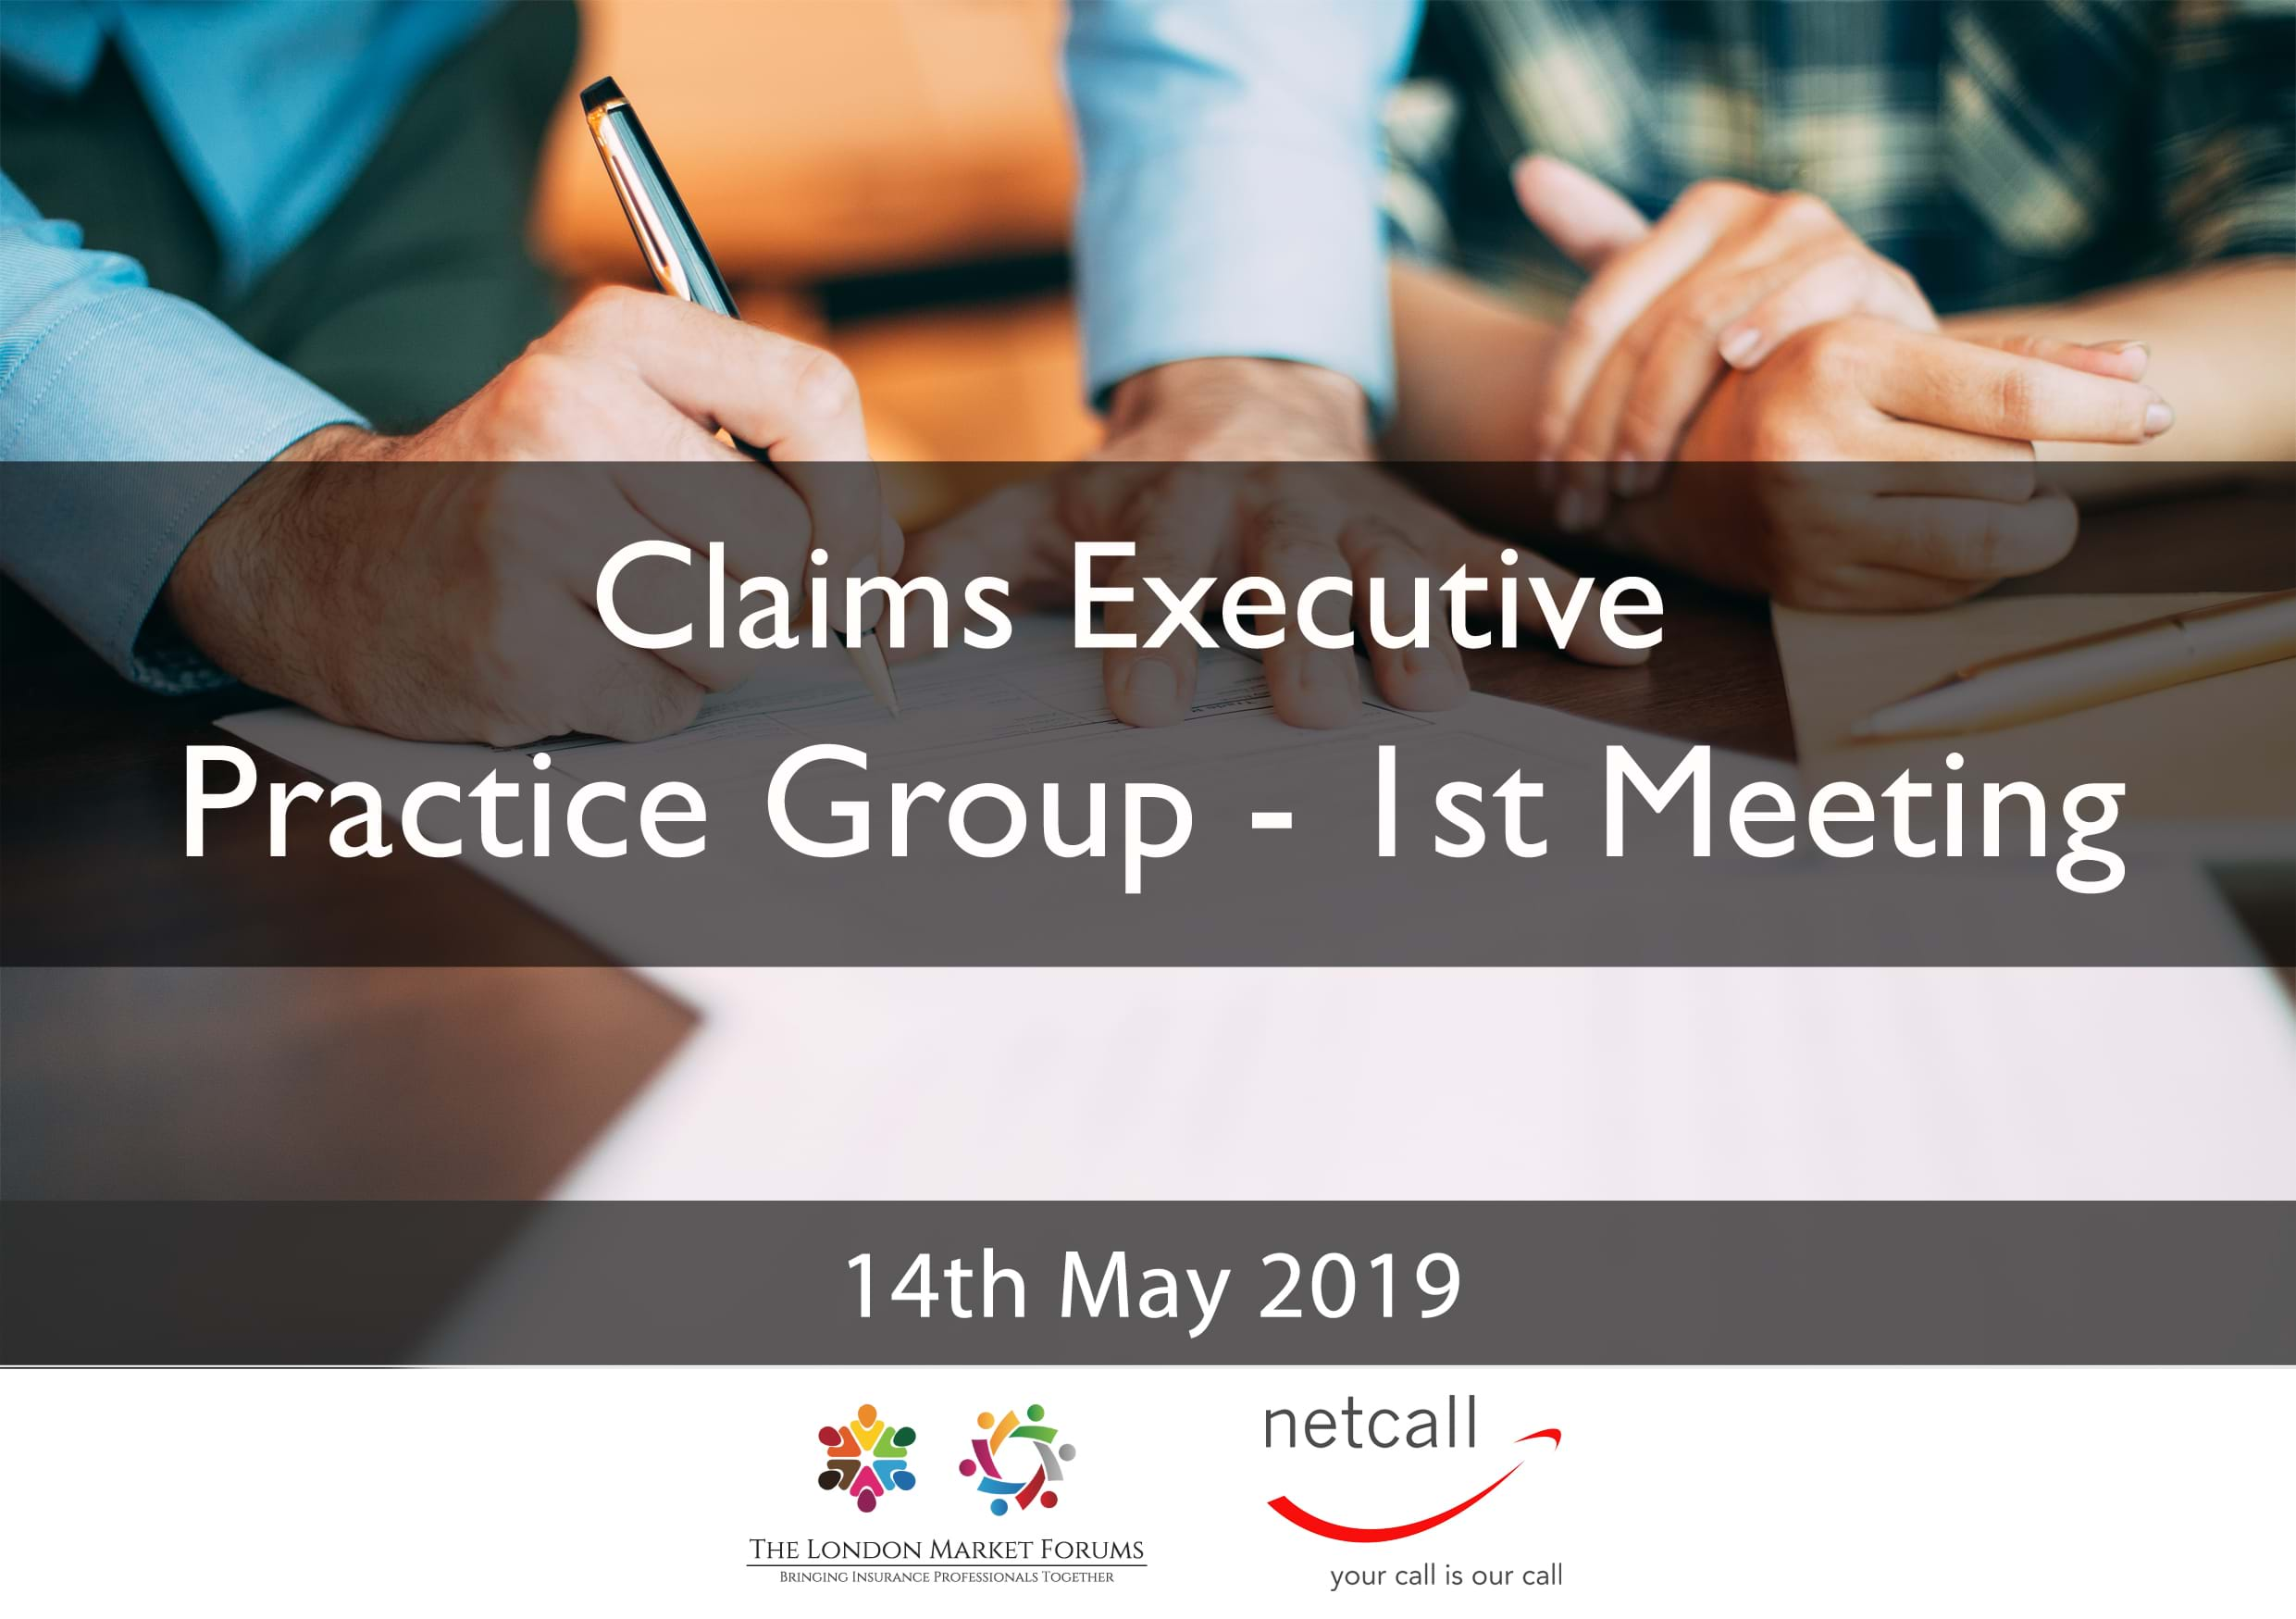 Claims Executive Practice Group - 14th May 2019